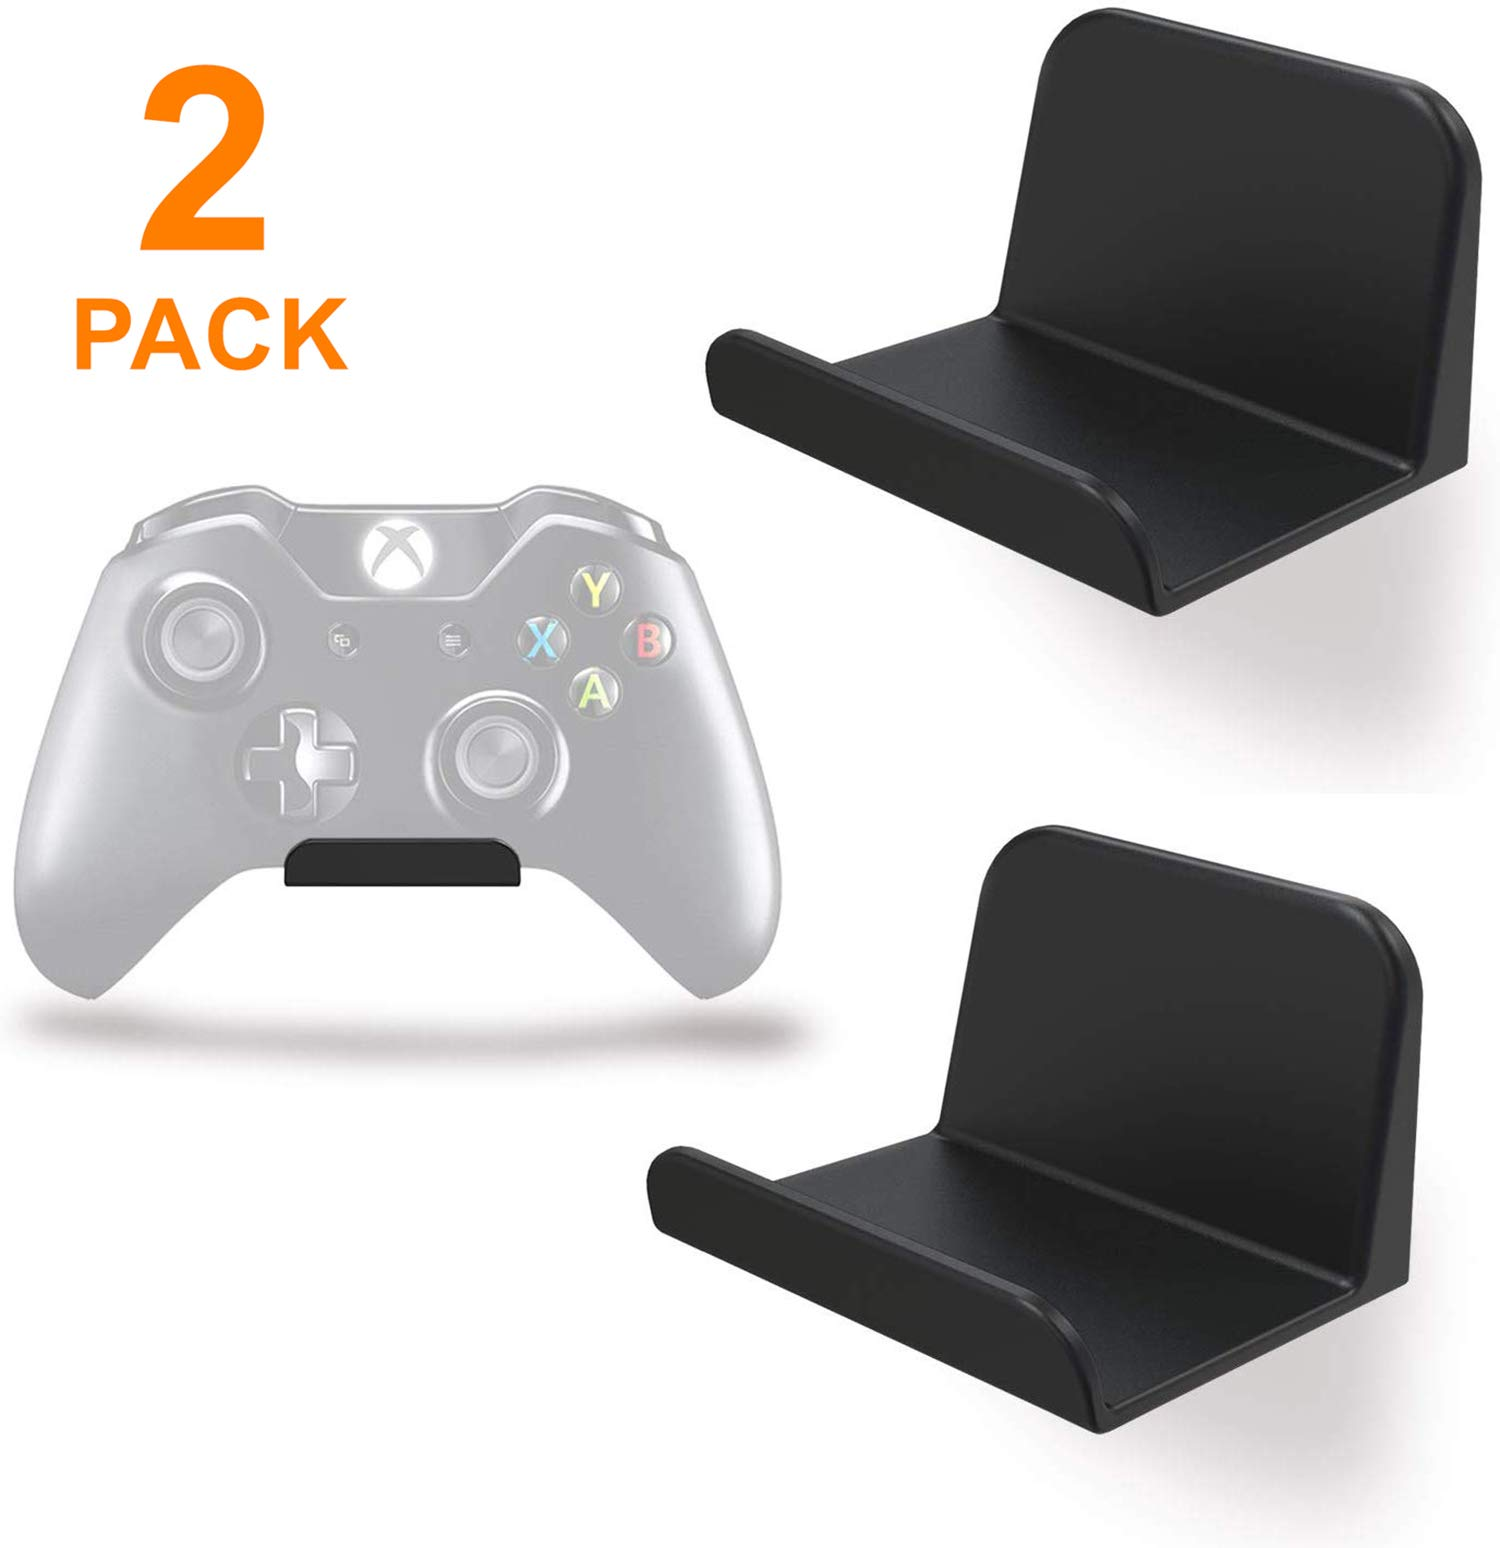 sciuU Wall Mount Stand Holder for Game Controller / Headphones, [2 Pack]Adhesive 3M Hangers, Universal Hook Accessories for Gamepad of Xbox / PS5 / PS4 / Nintendo, No Screws